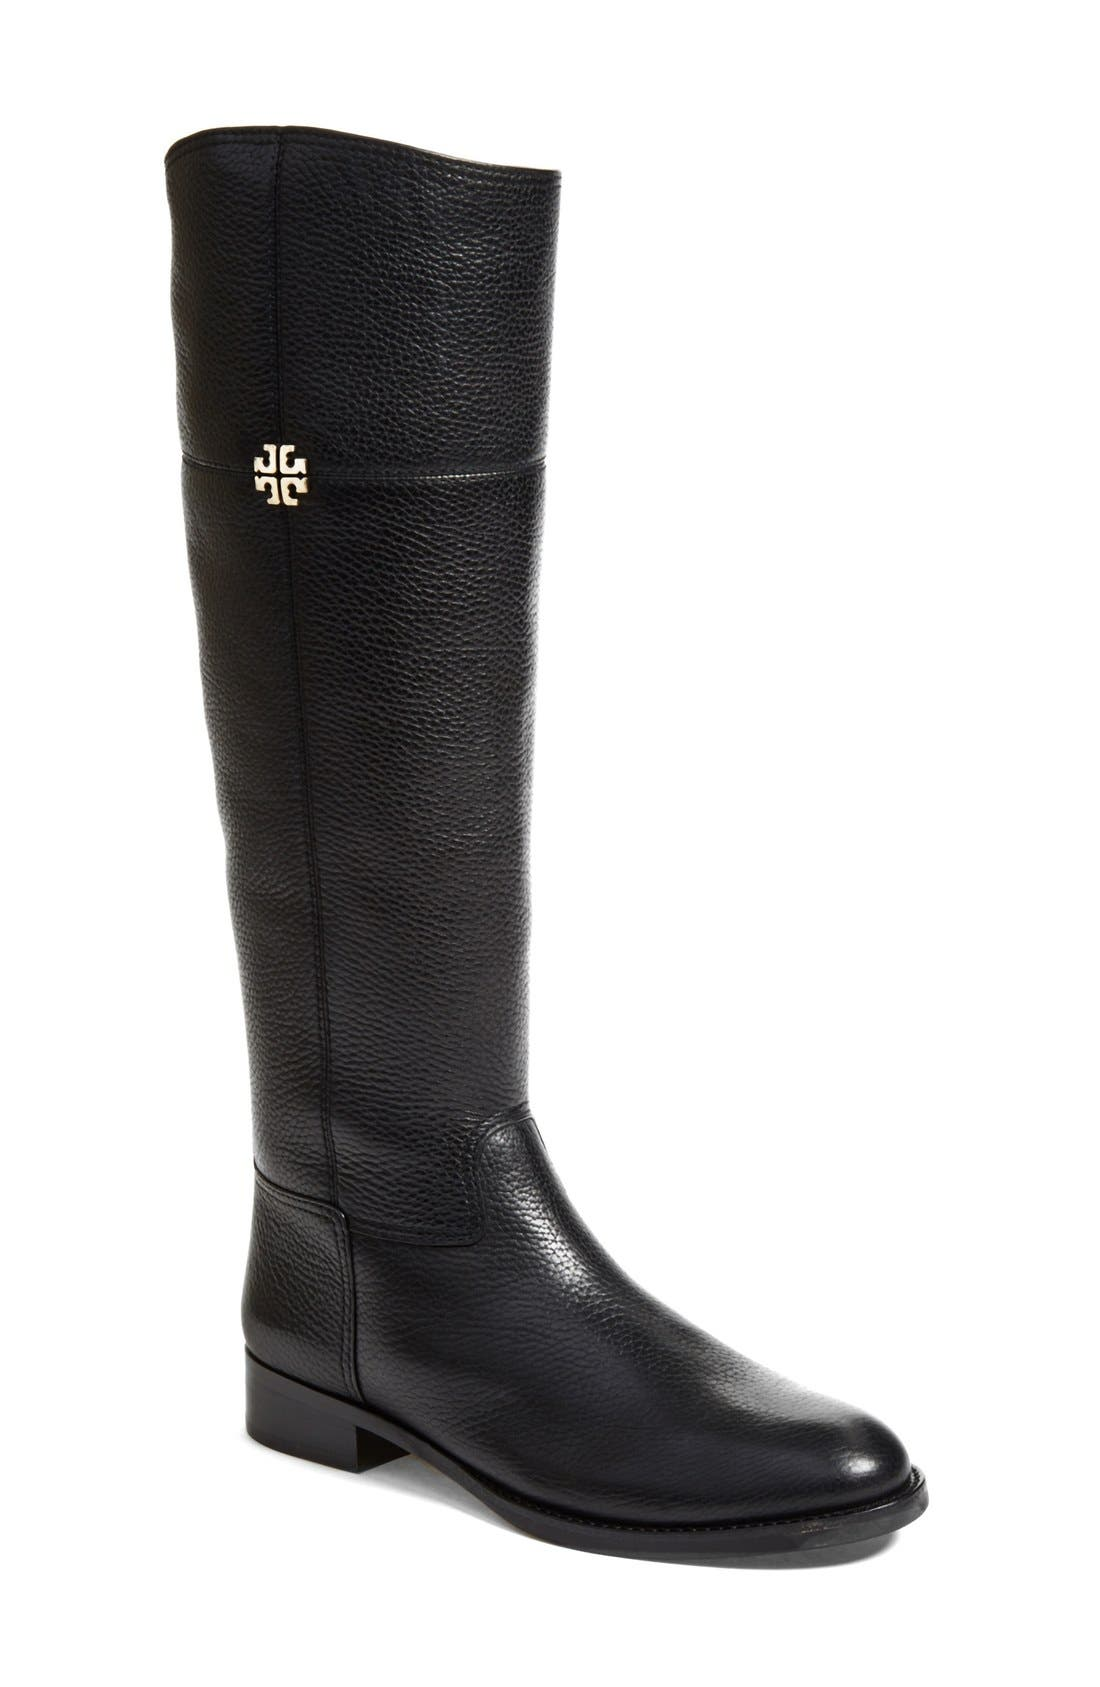 Alternate Image 1 Selected - Tory Burch 'Jolie' Riding Boot (Women)